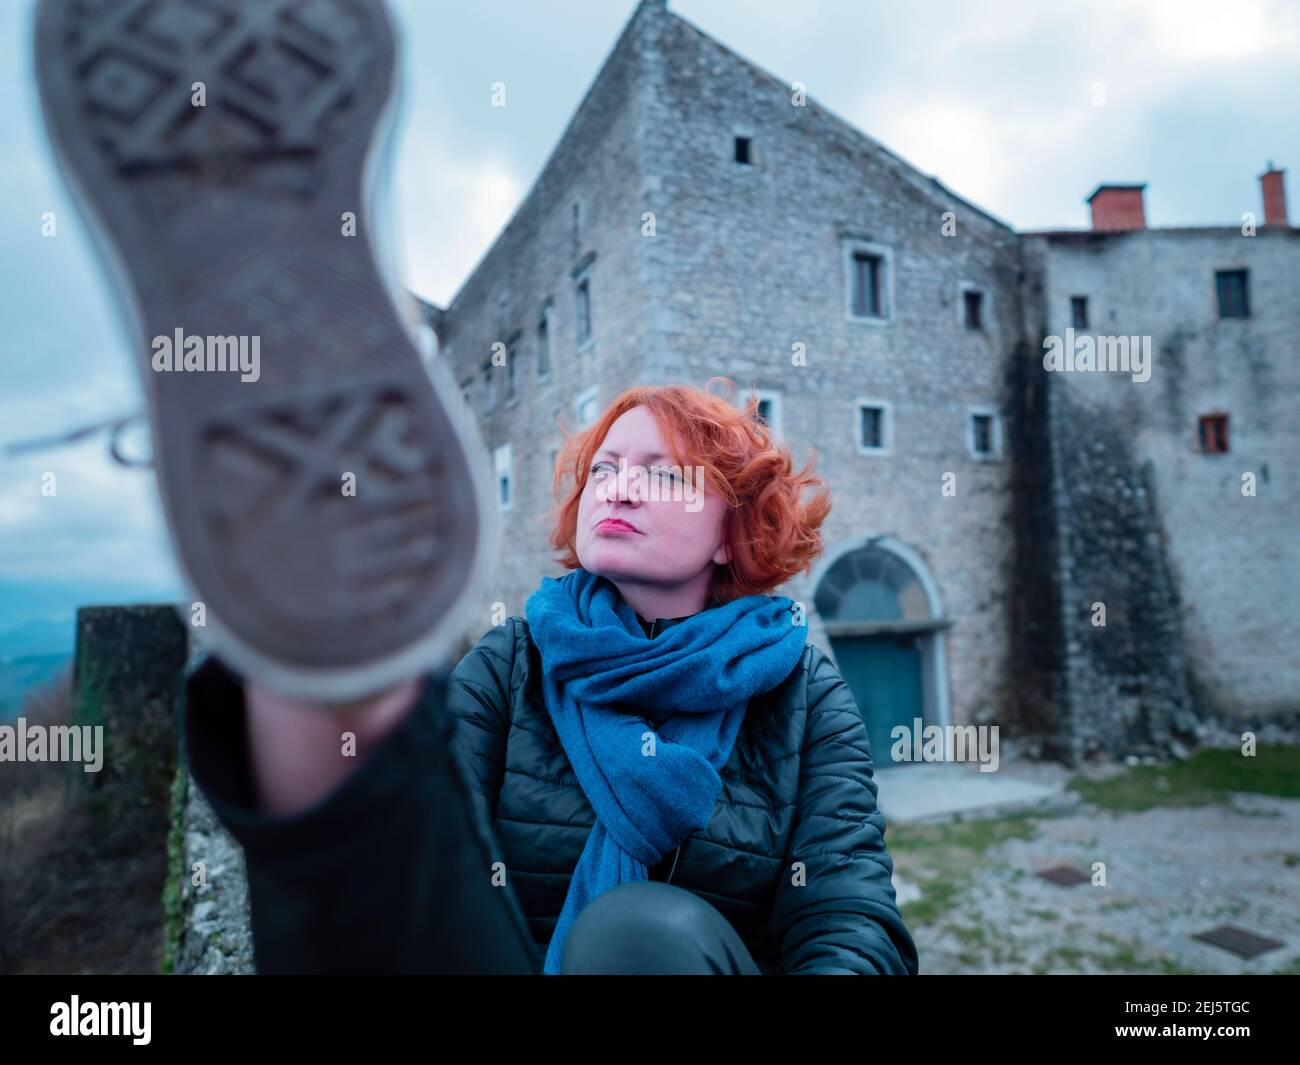 Woman with curly curls Red hair sitting before medieval fort tower high towards camera closeup under sneaker sneakers foot leg raised raising odd Stock Photo